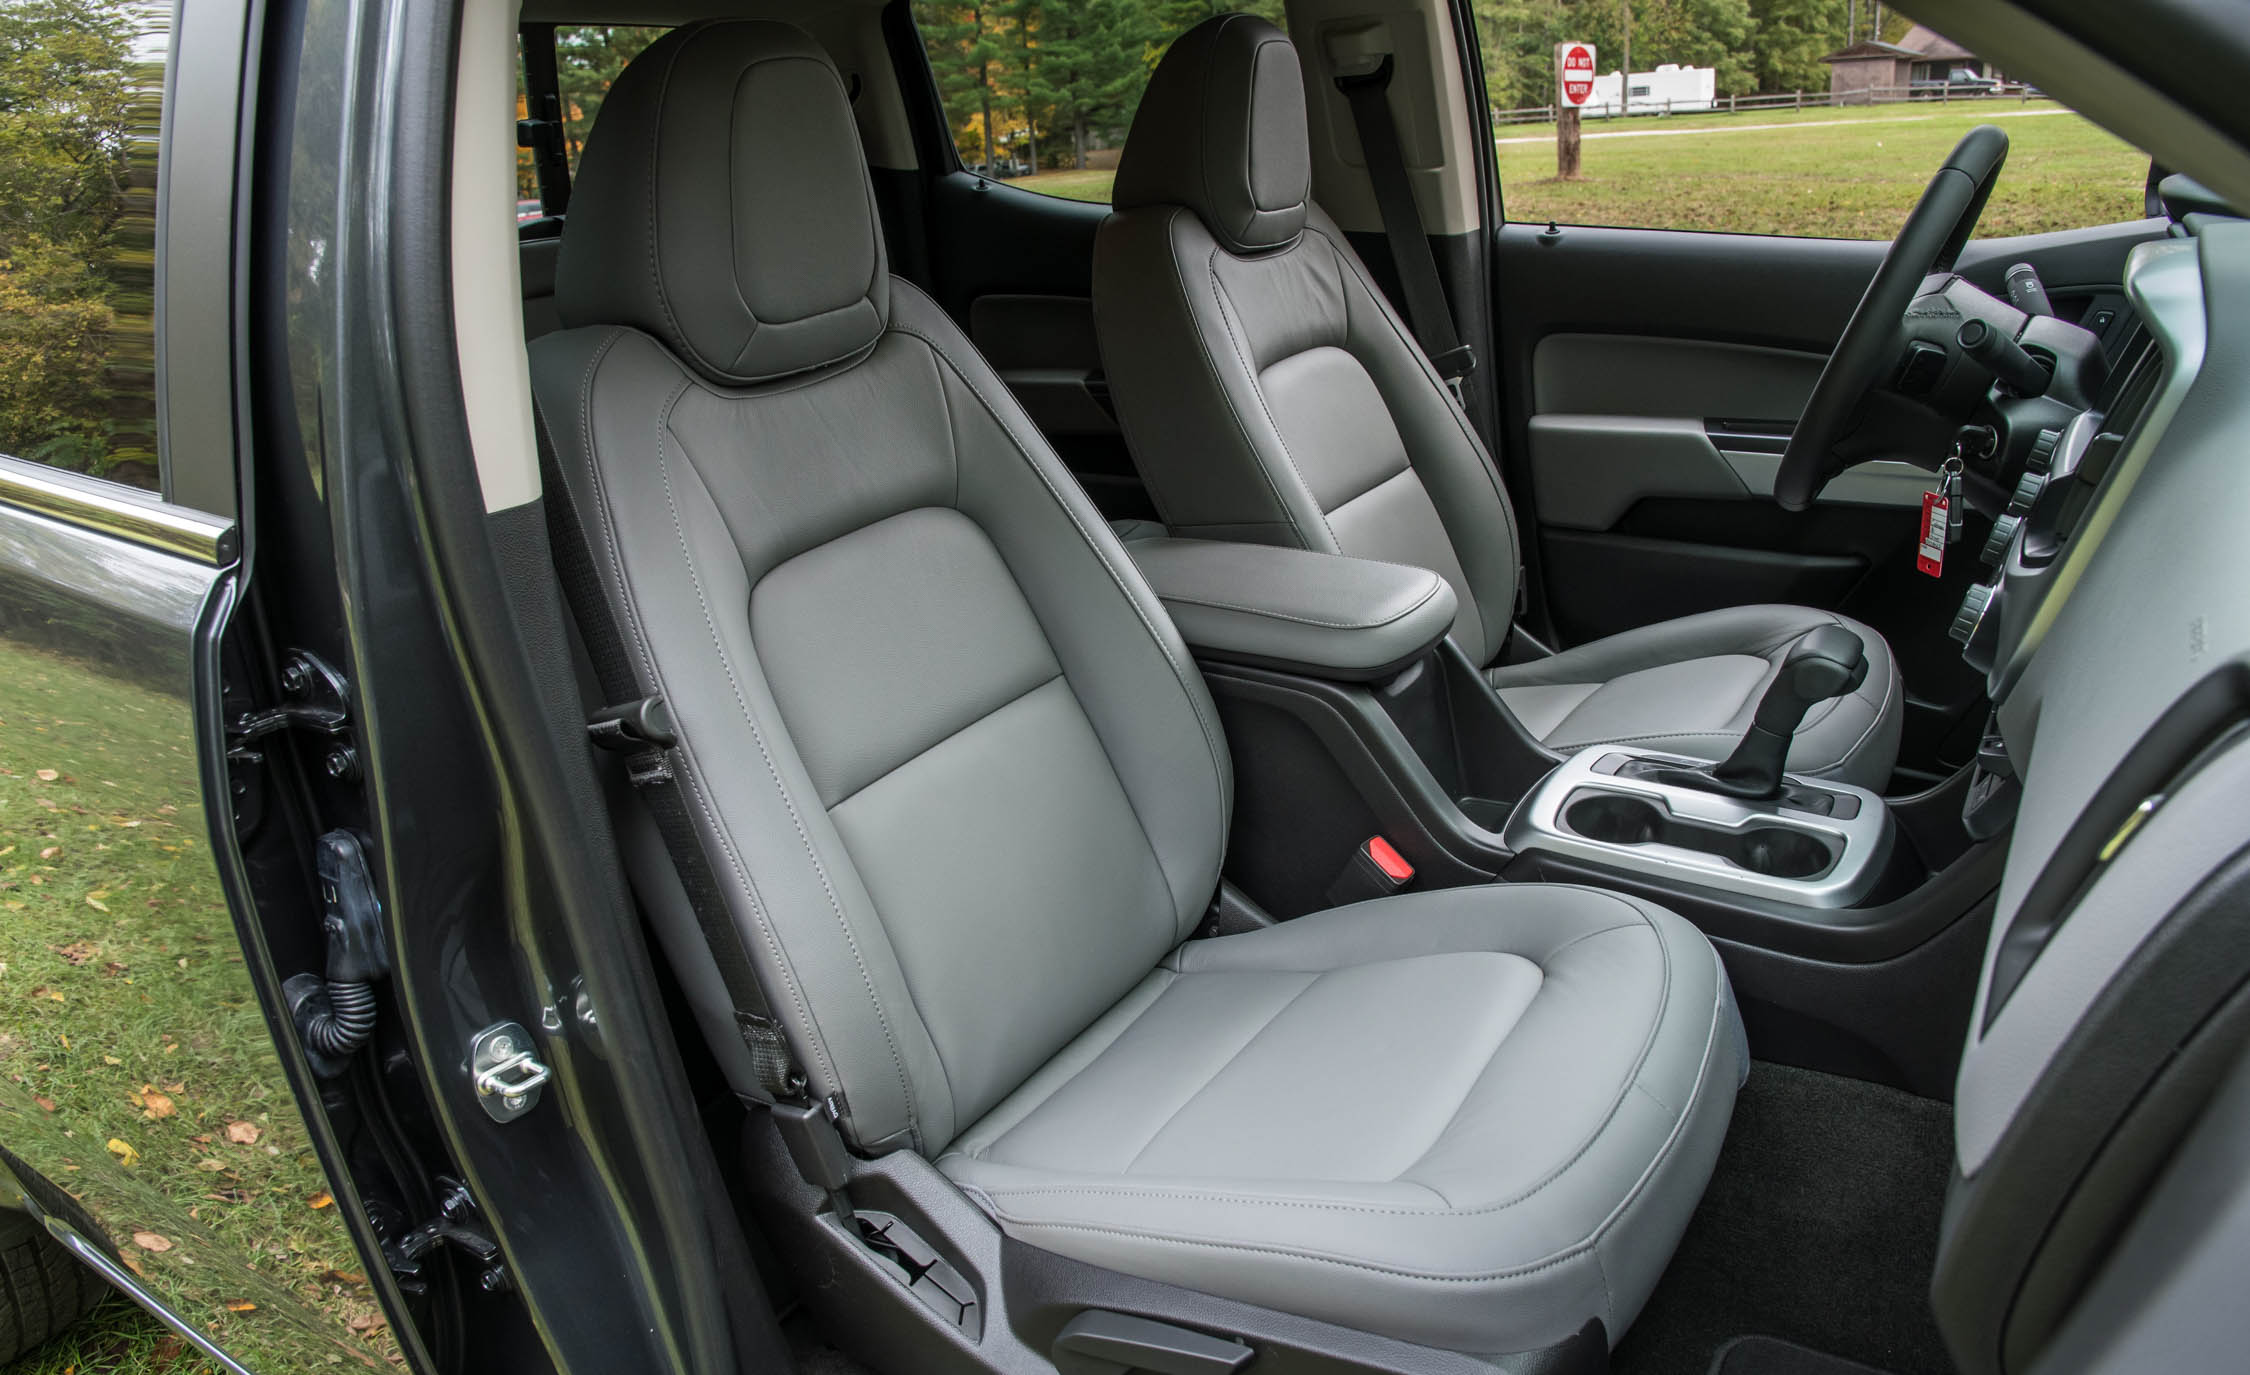 2017 Chevrolet Colorado LT Interior Seats Front (Photo 31 of 41)